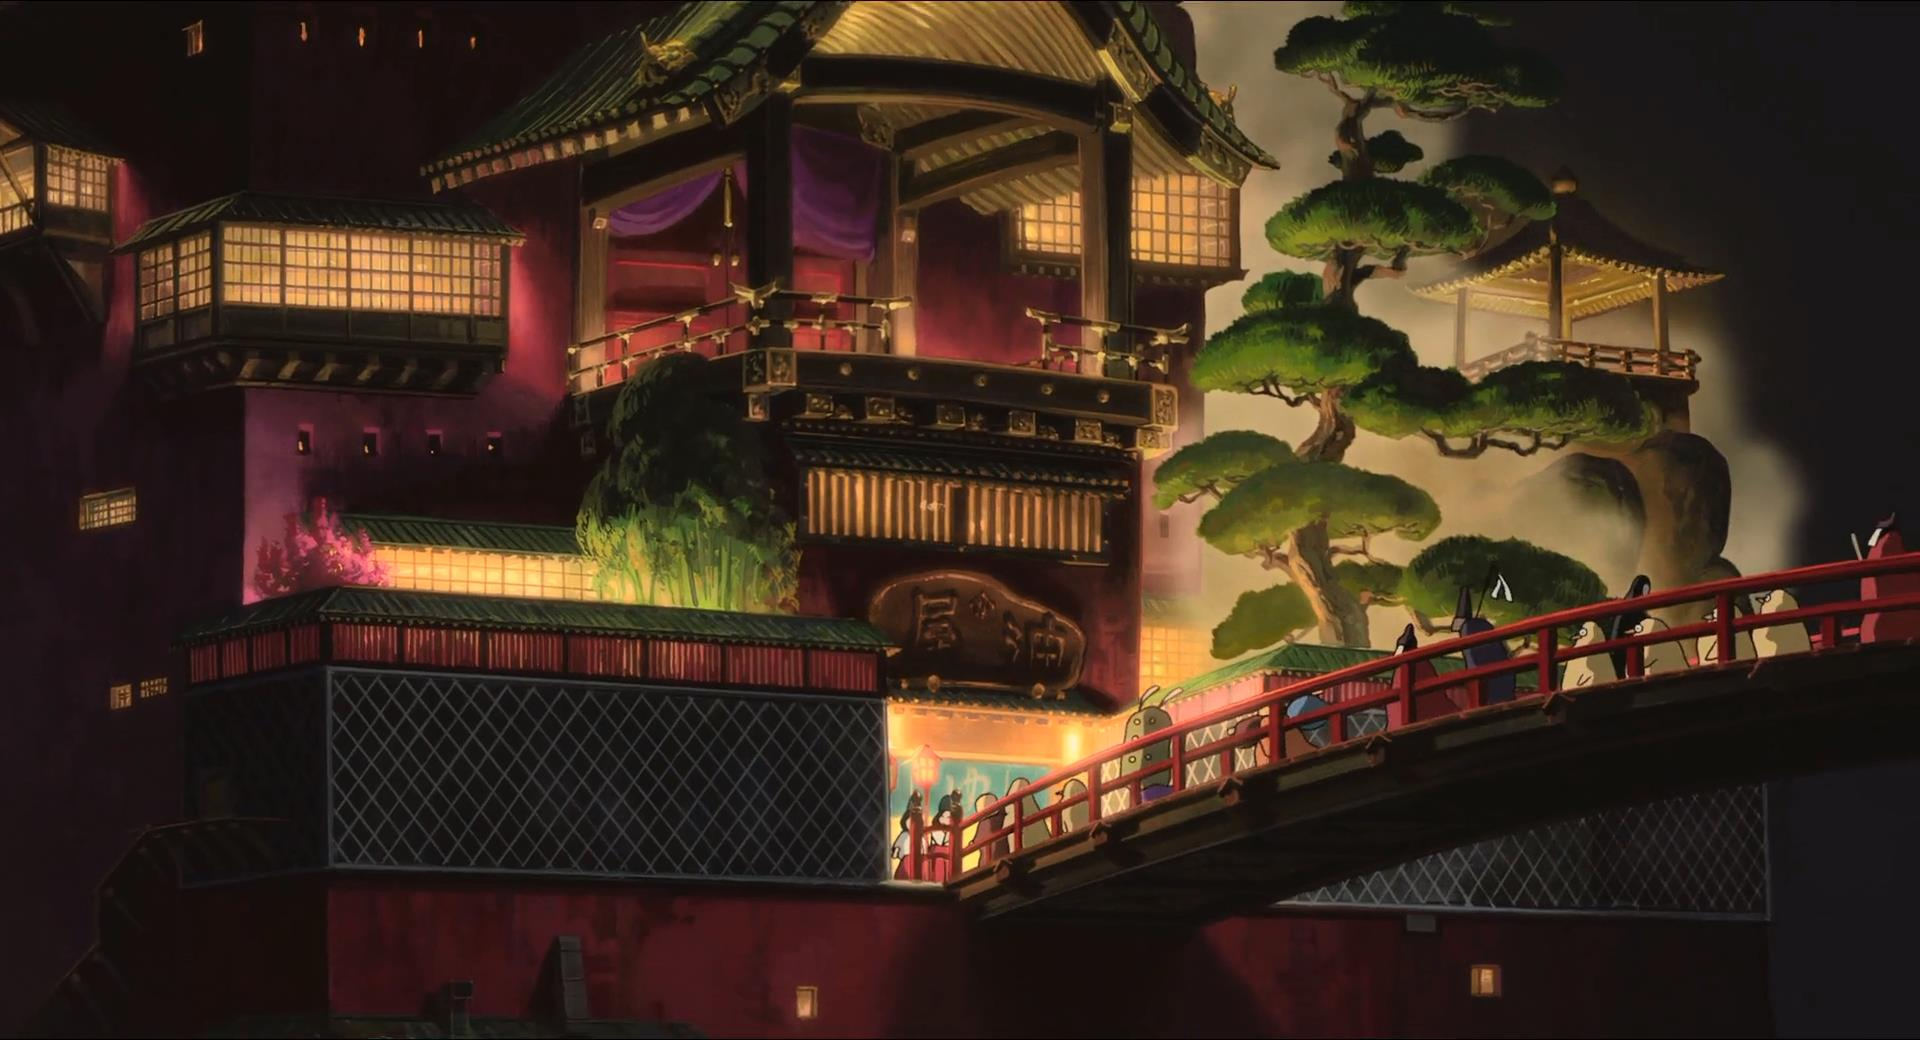 Spirited Away Bath House Nefarious Reviews